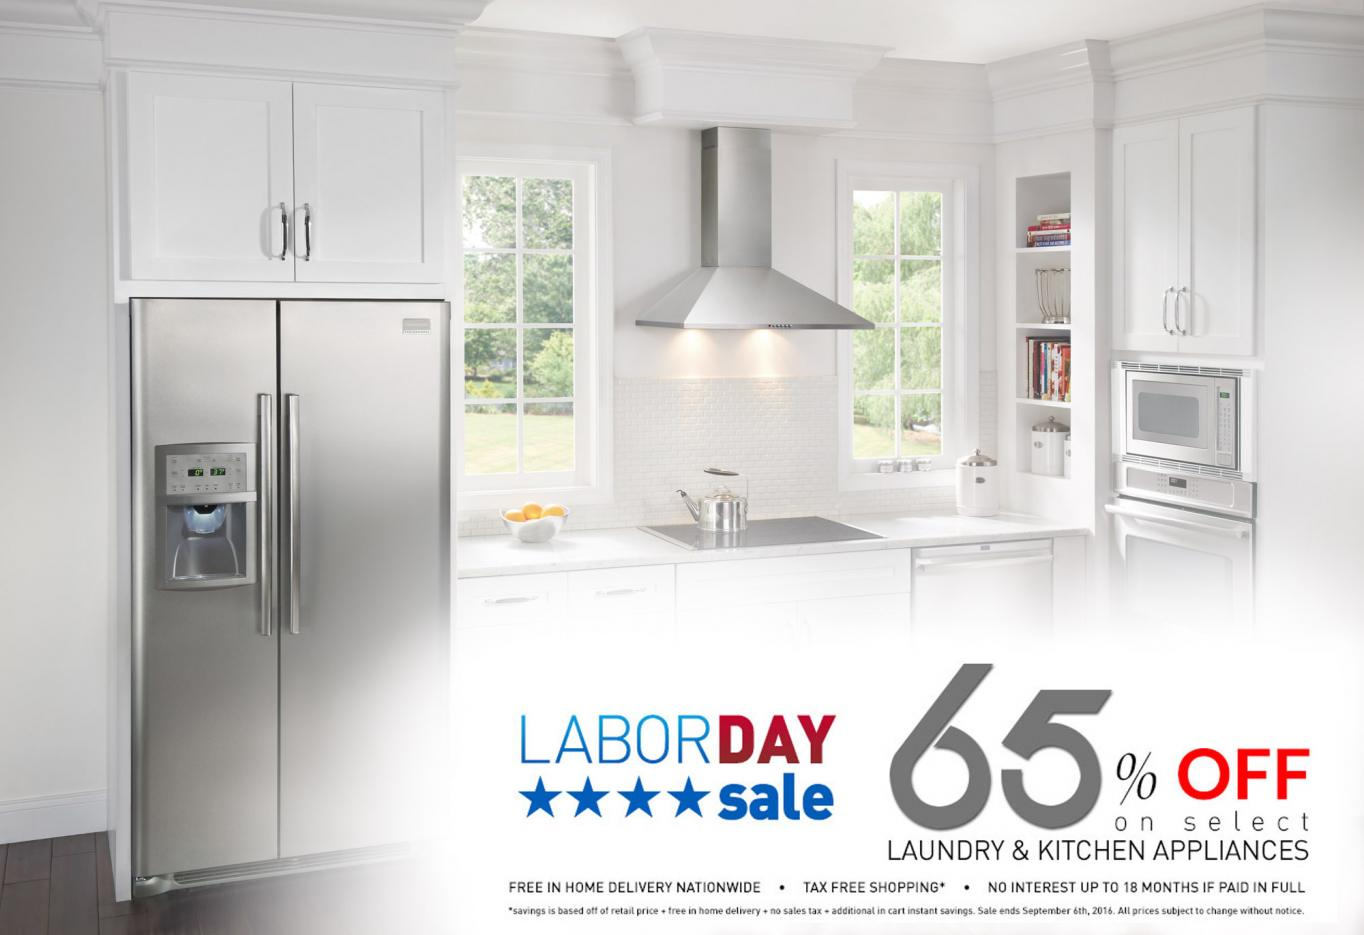 Labor Day Savings at Appliances Connection offer up to 65% off the retail price.